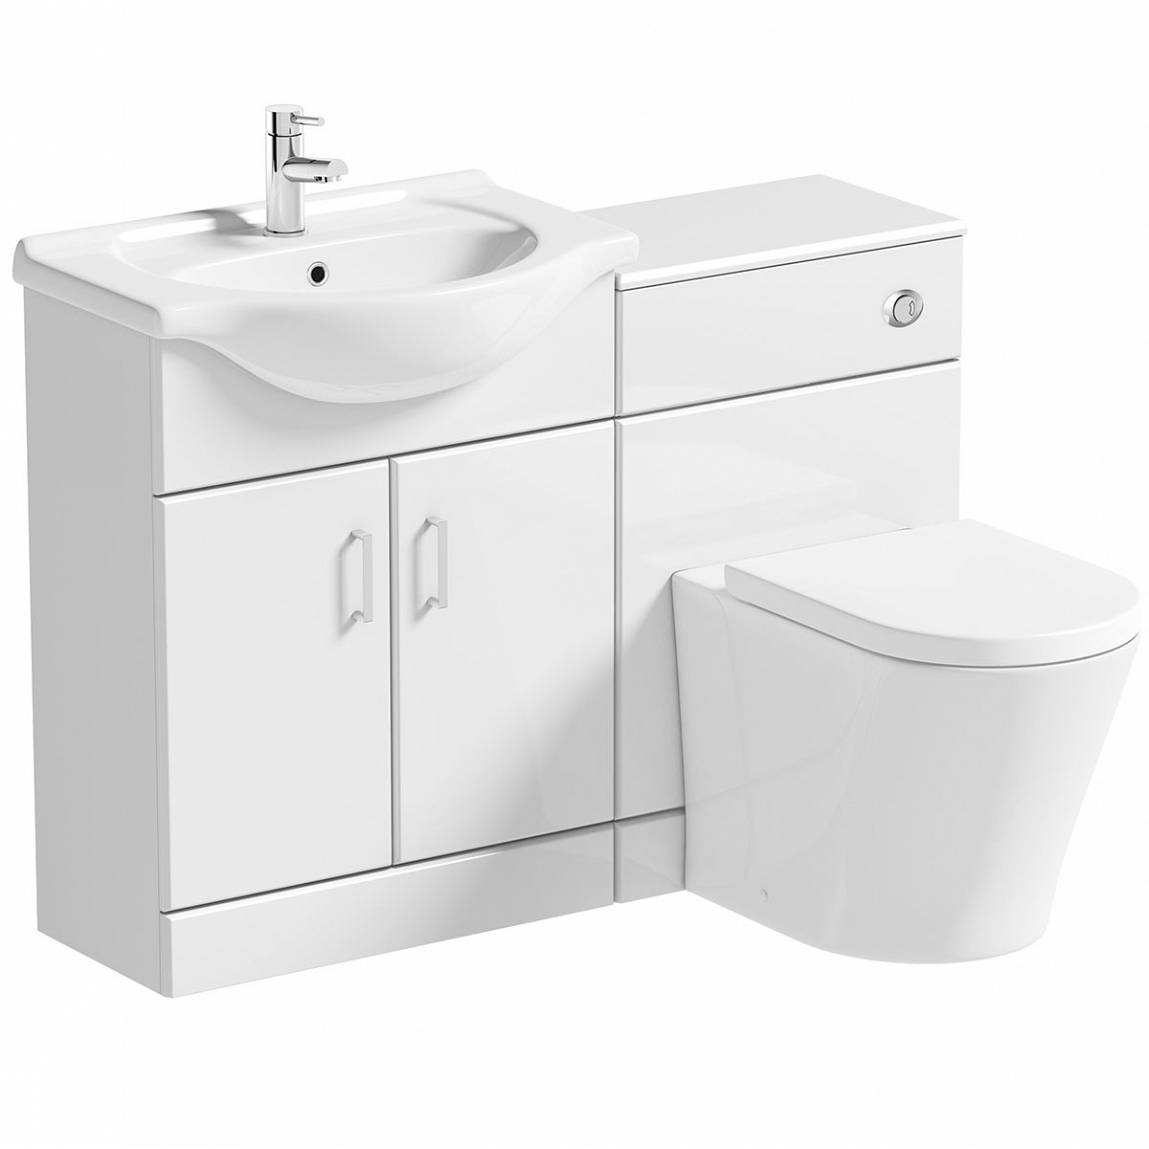 Image of Sienna Arc White Gloss Combination Vanity Unit Large